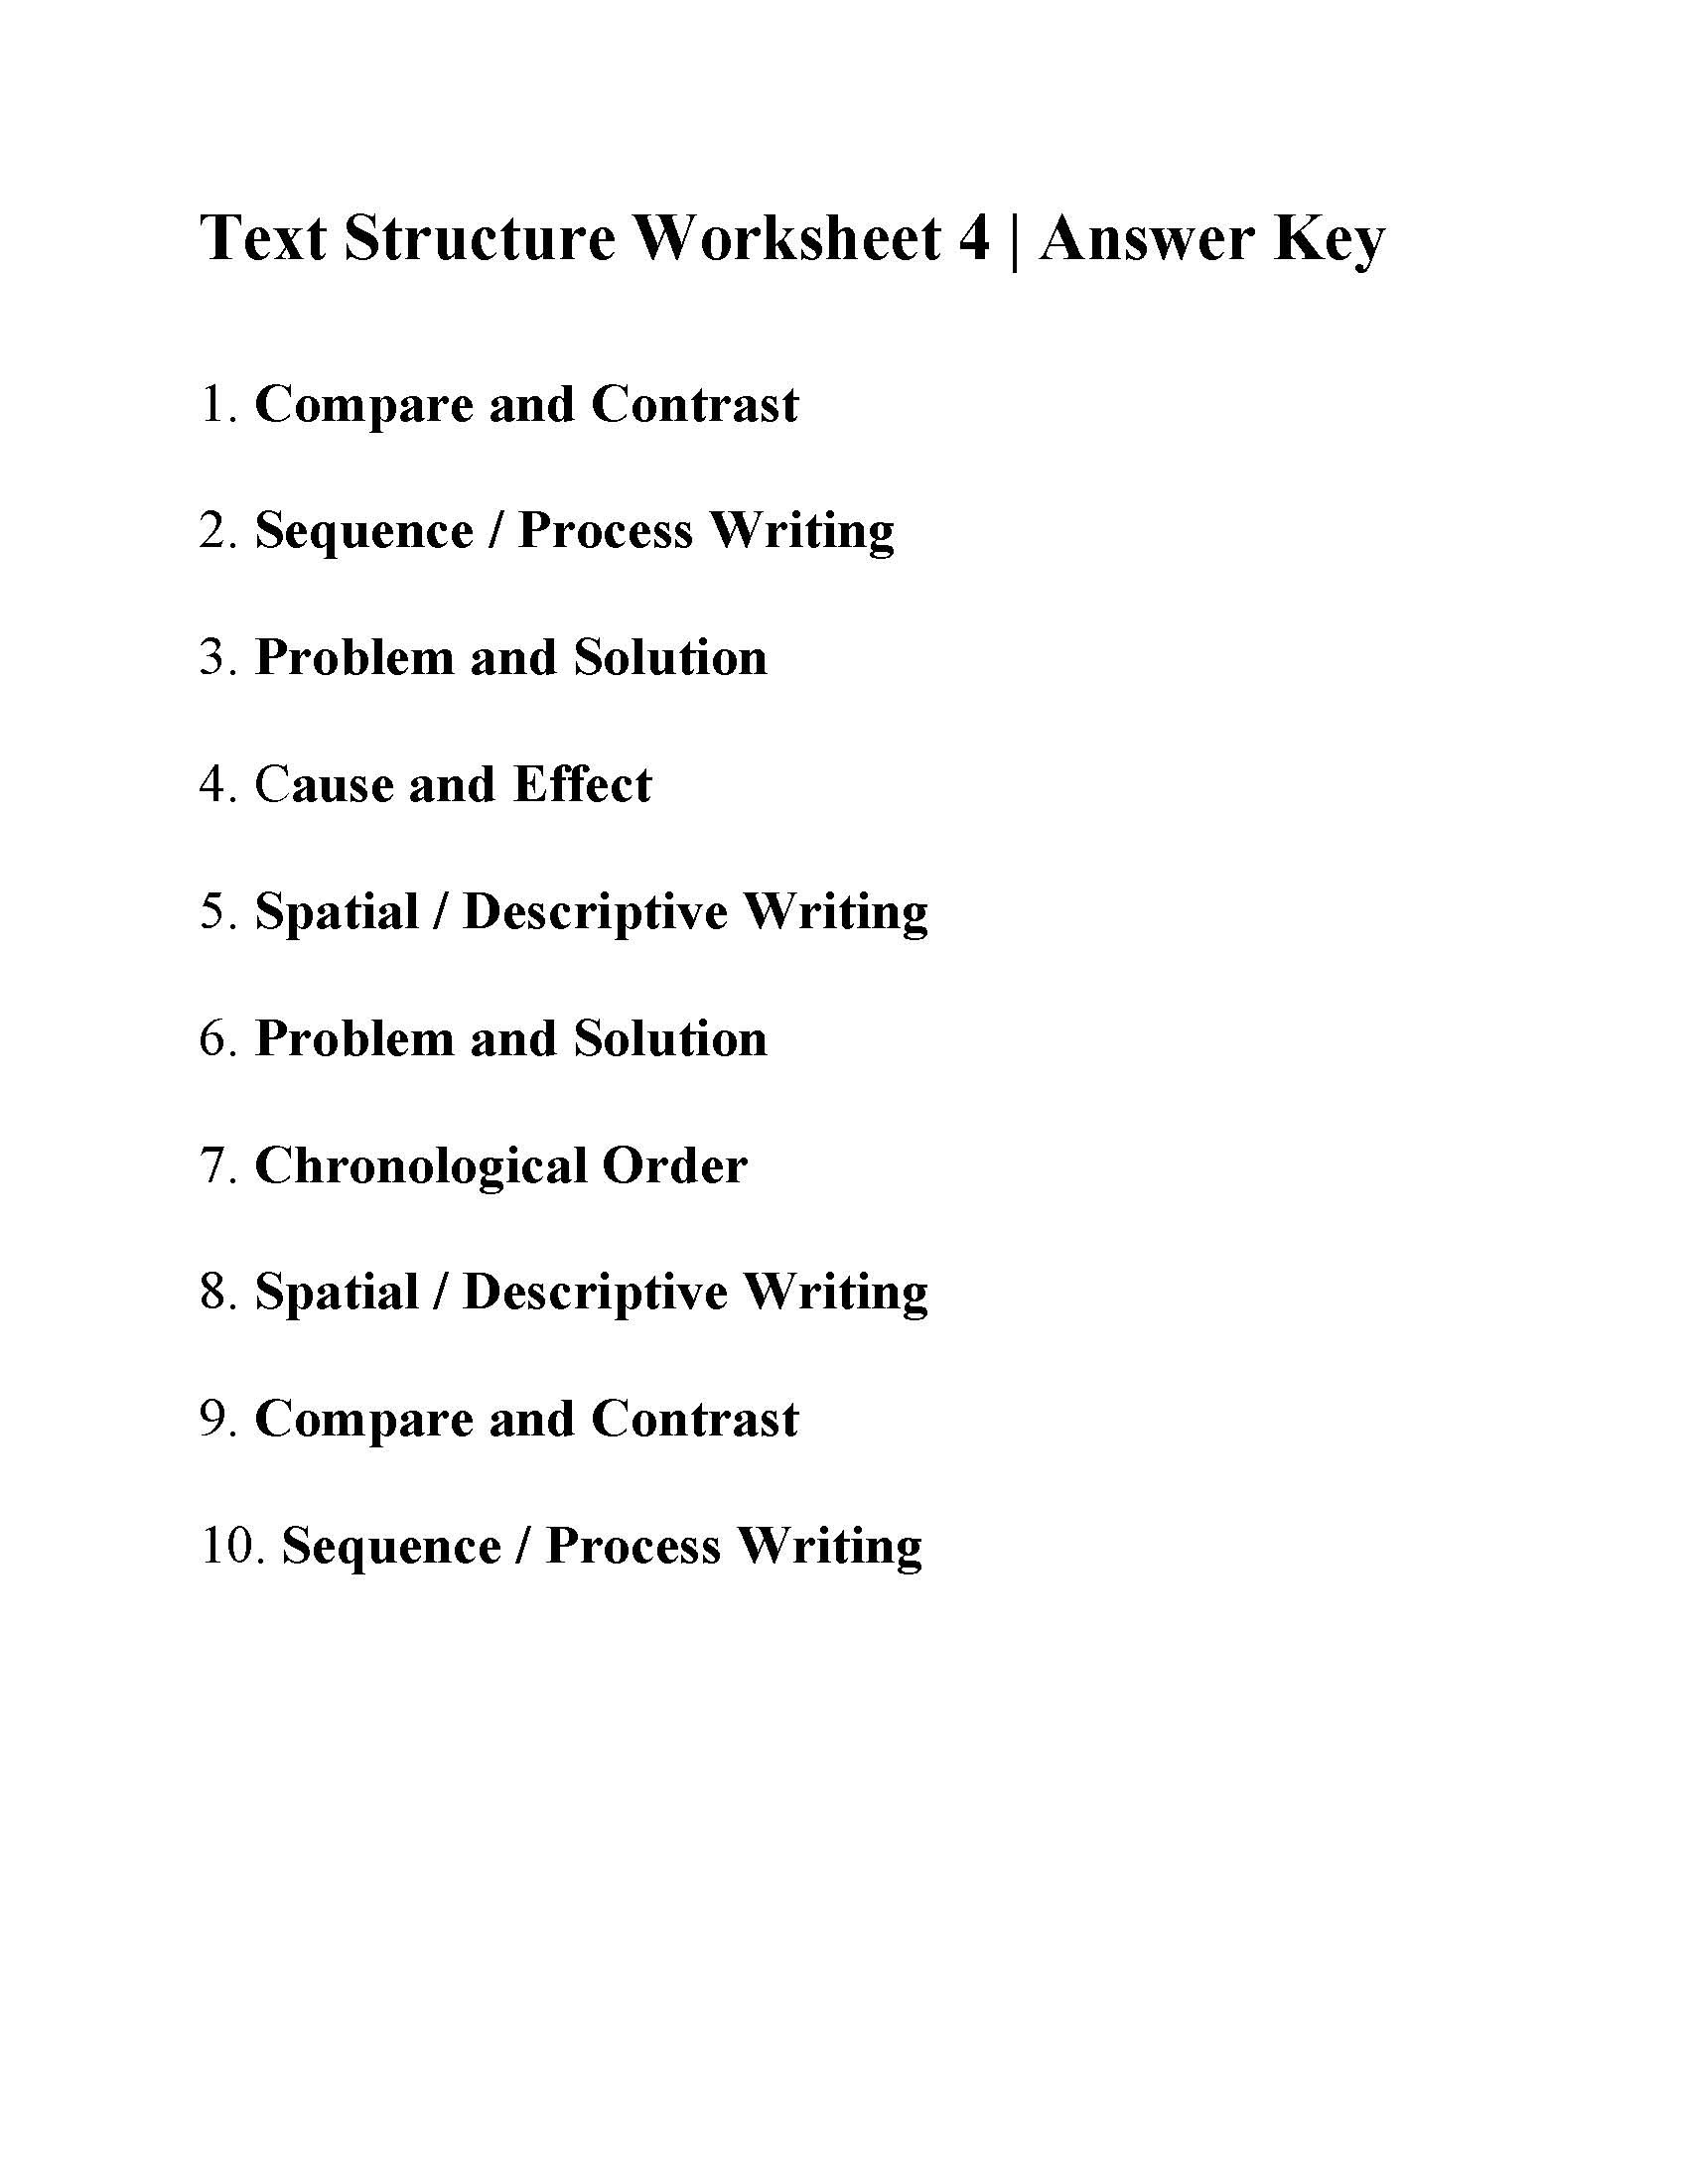 Text Structure 4th Grade Worksheets Text Structure Worksheet 4